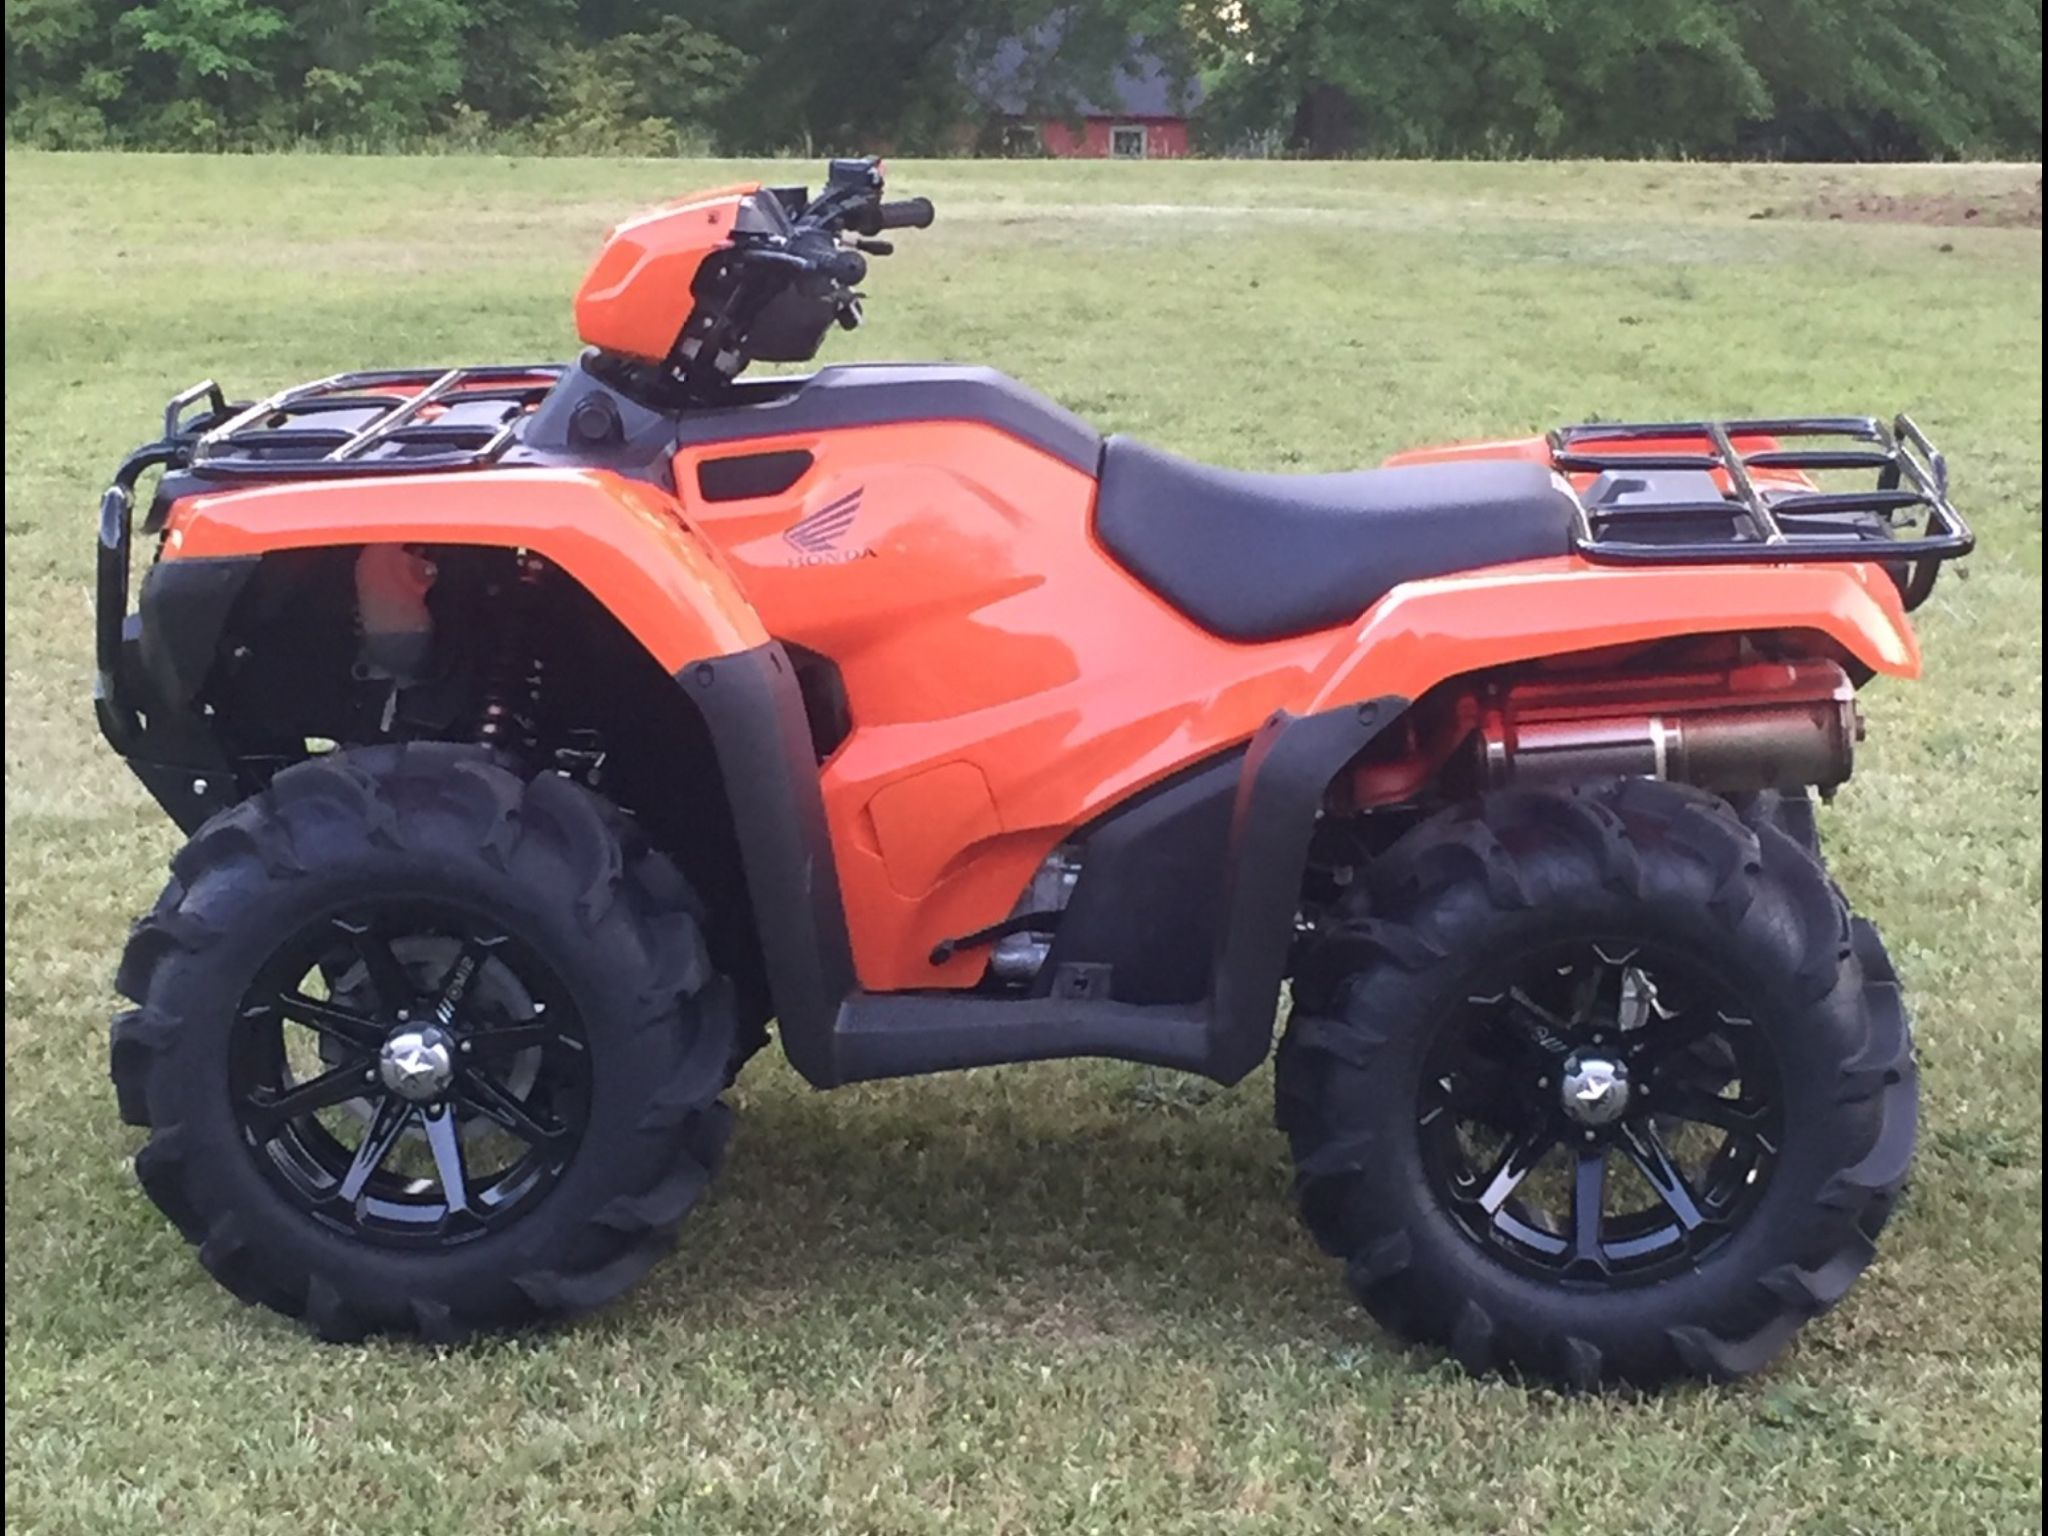 2016 Honda 500 Foreman I Have The Same One With Different Wheels Atv Fifth Wheel Trailers Atv Riding